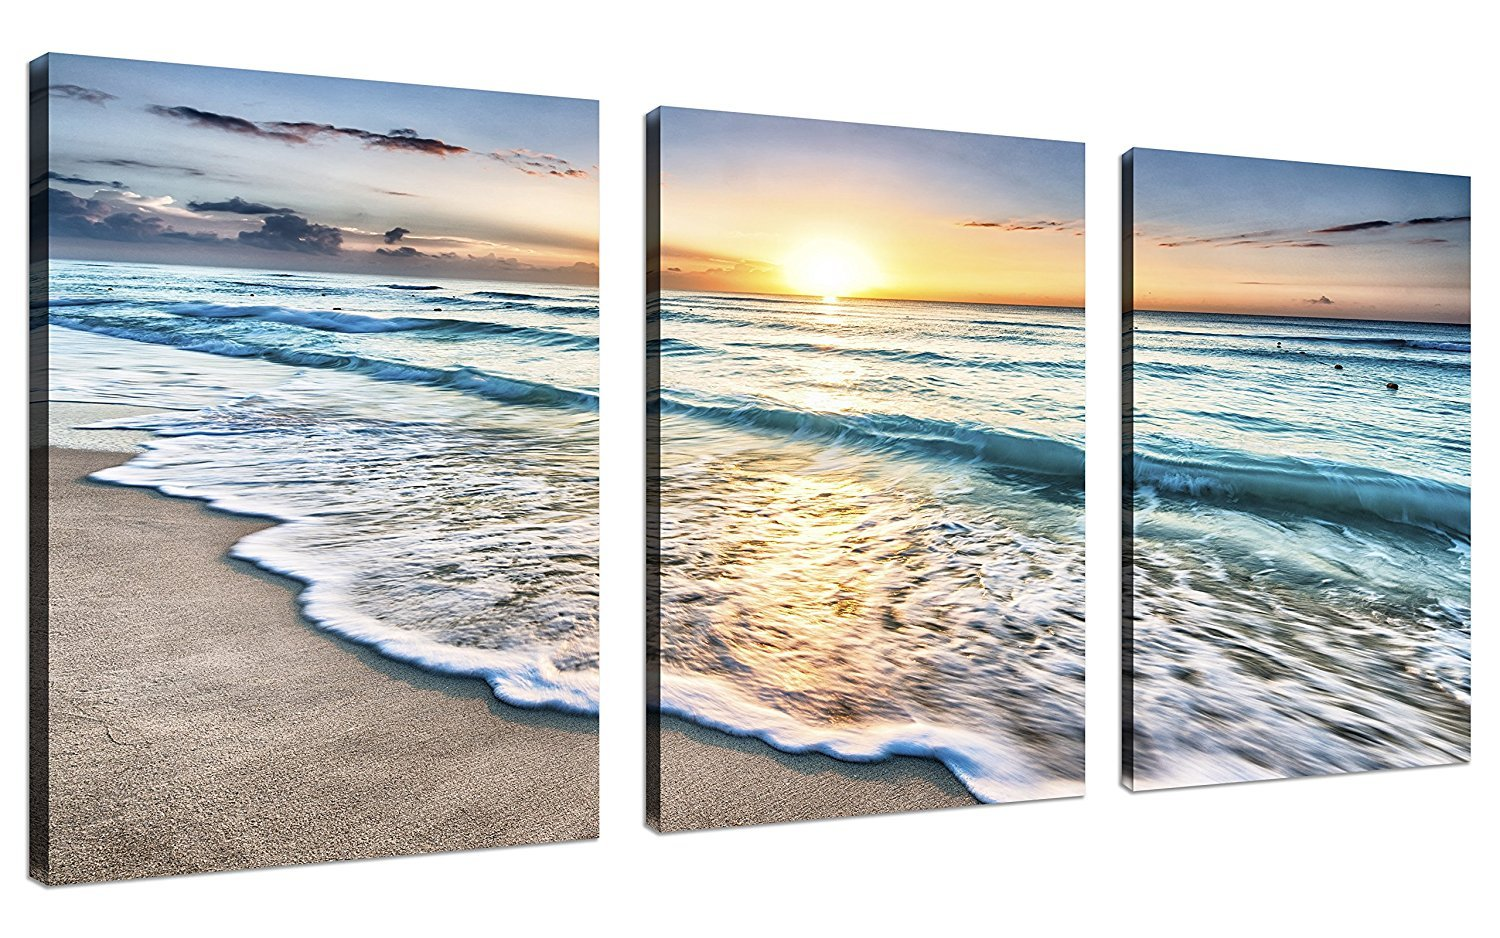 CUFUN Art 3 Panels The Colorful Stones under Sunset Landscape Canvas Prints Wall Art for Home Decorations Stretched Framed Ready to Hang